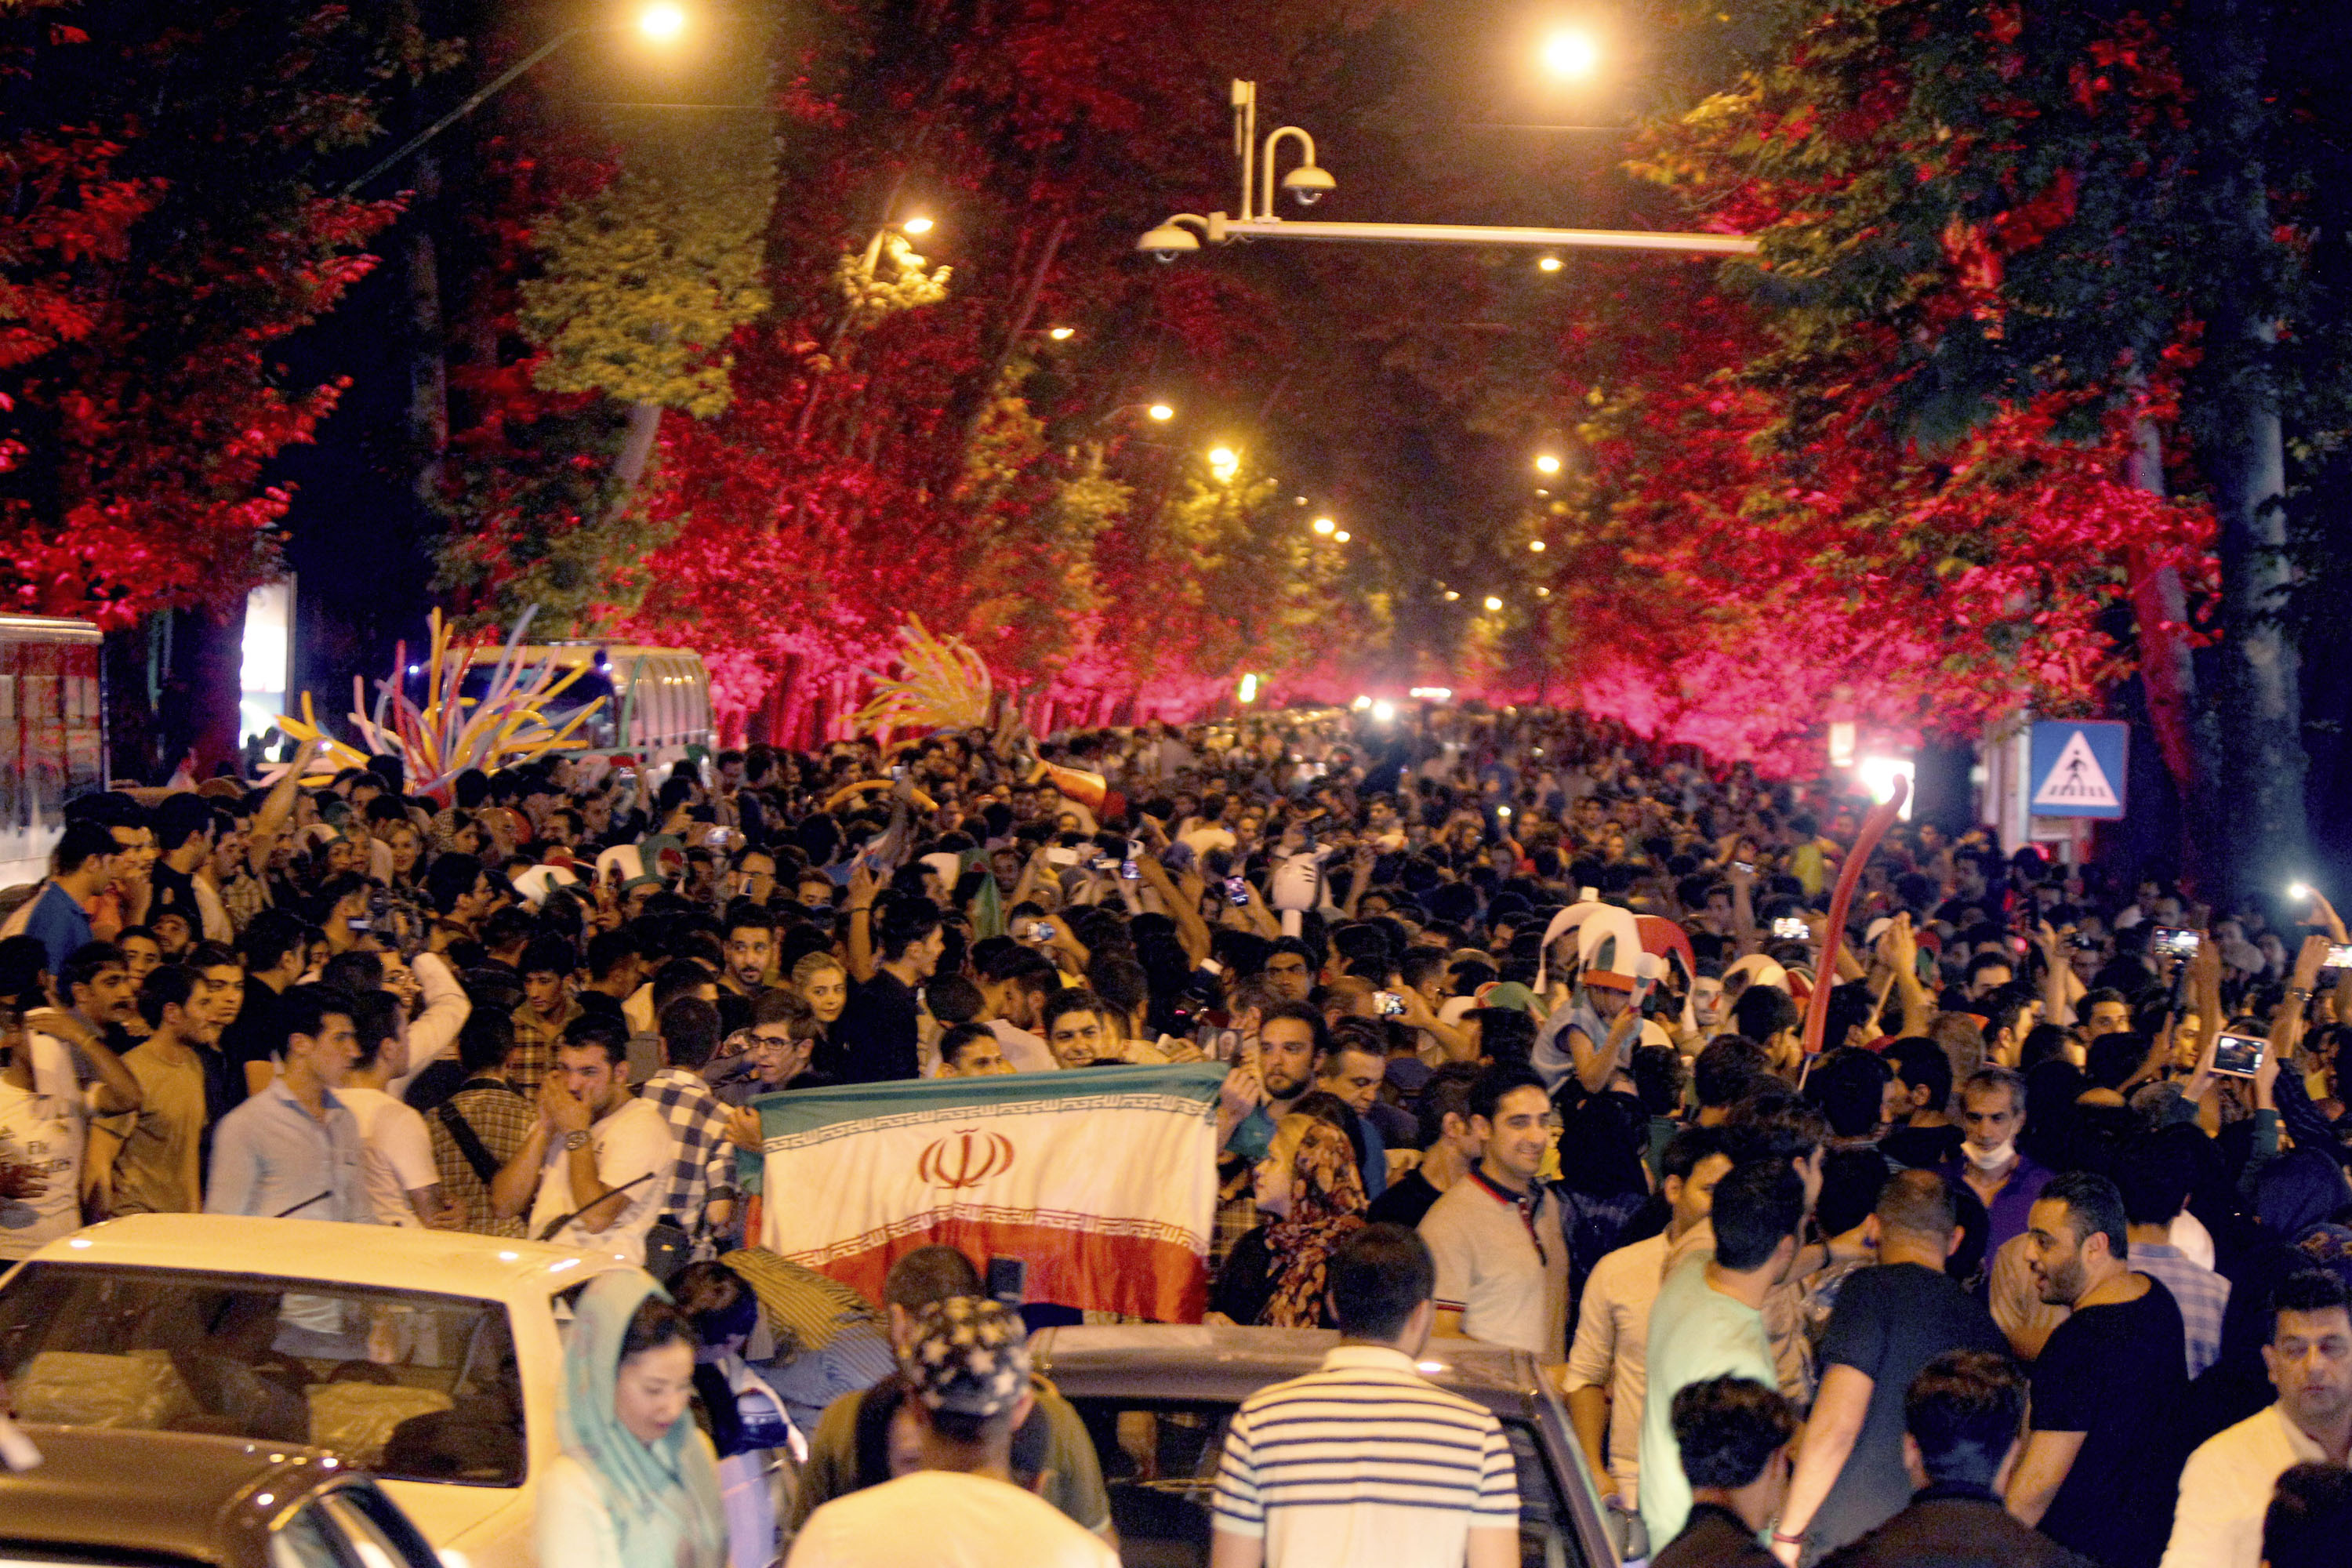 Iranians take to the streets of Tehran on July14 to celebrate their country's historic nuclear accord.